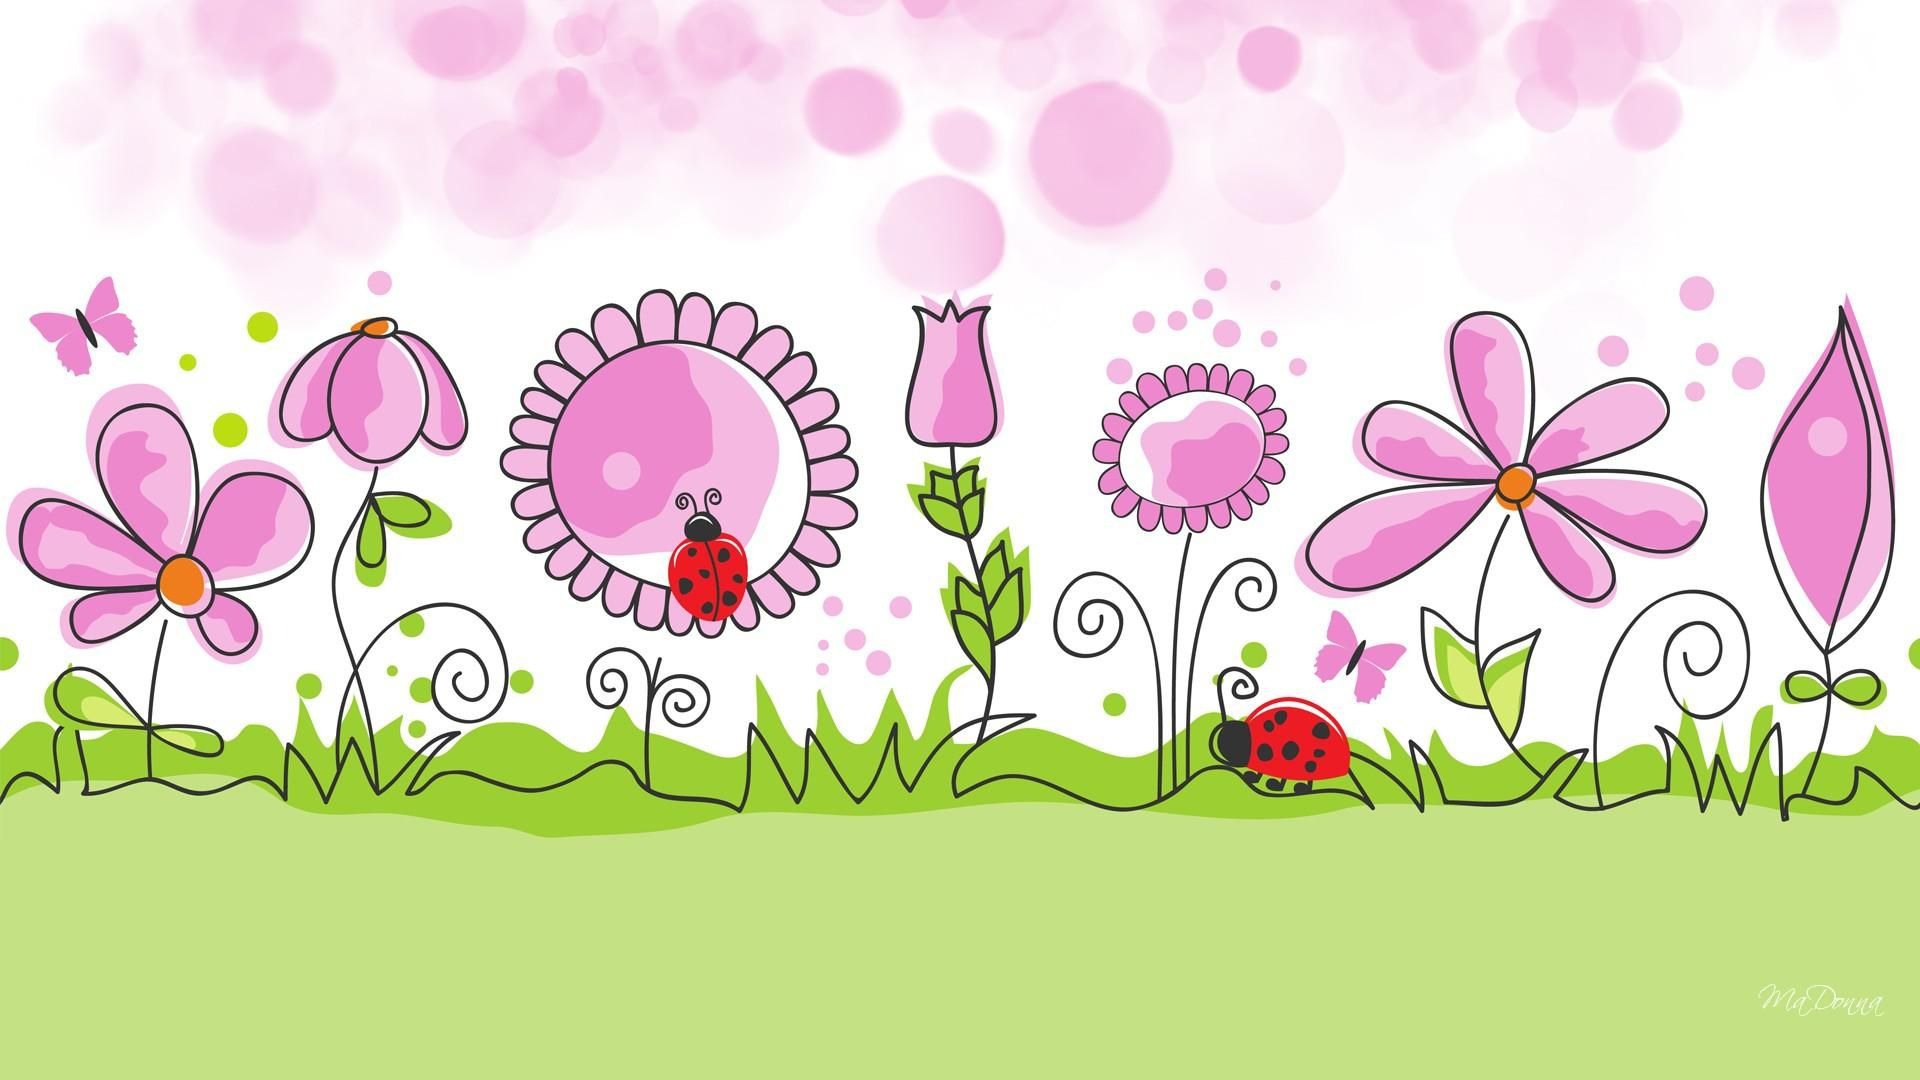 HD Flower Garden Spring Vector Free Desktop Background